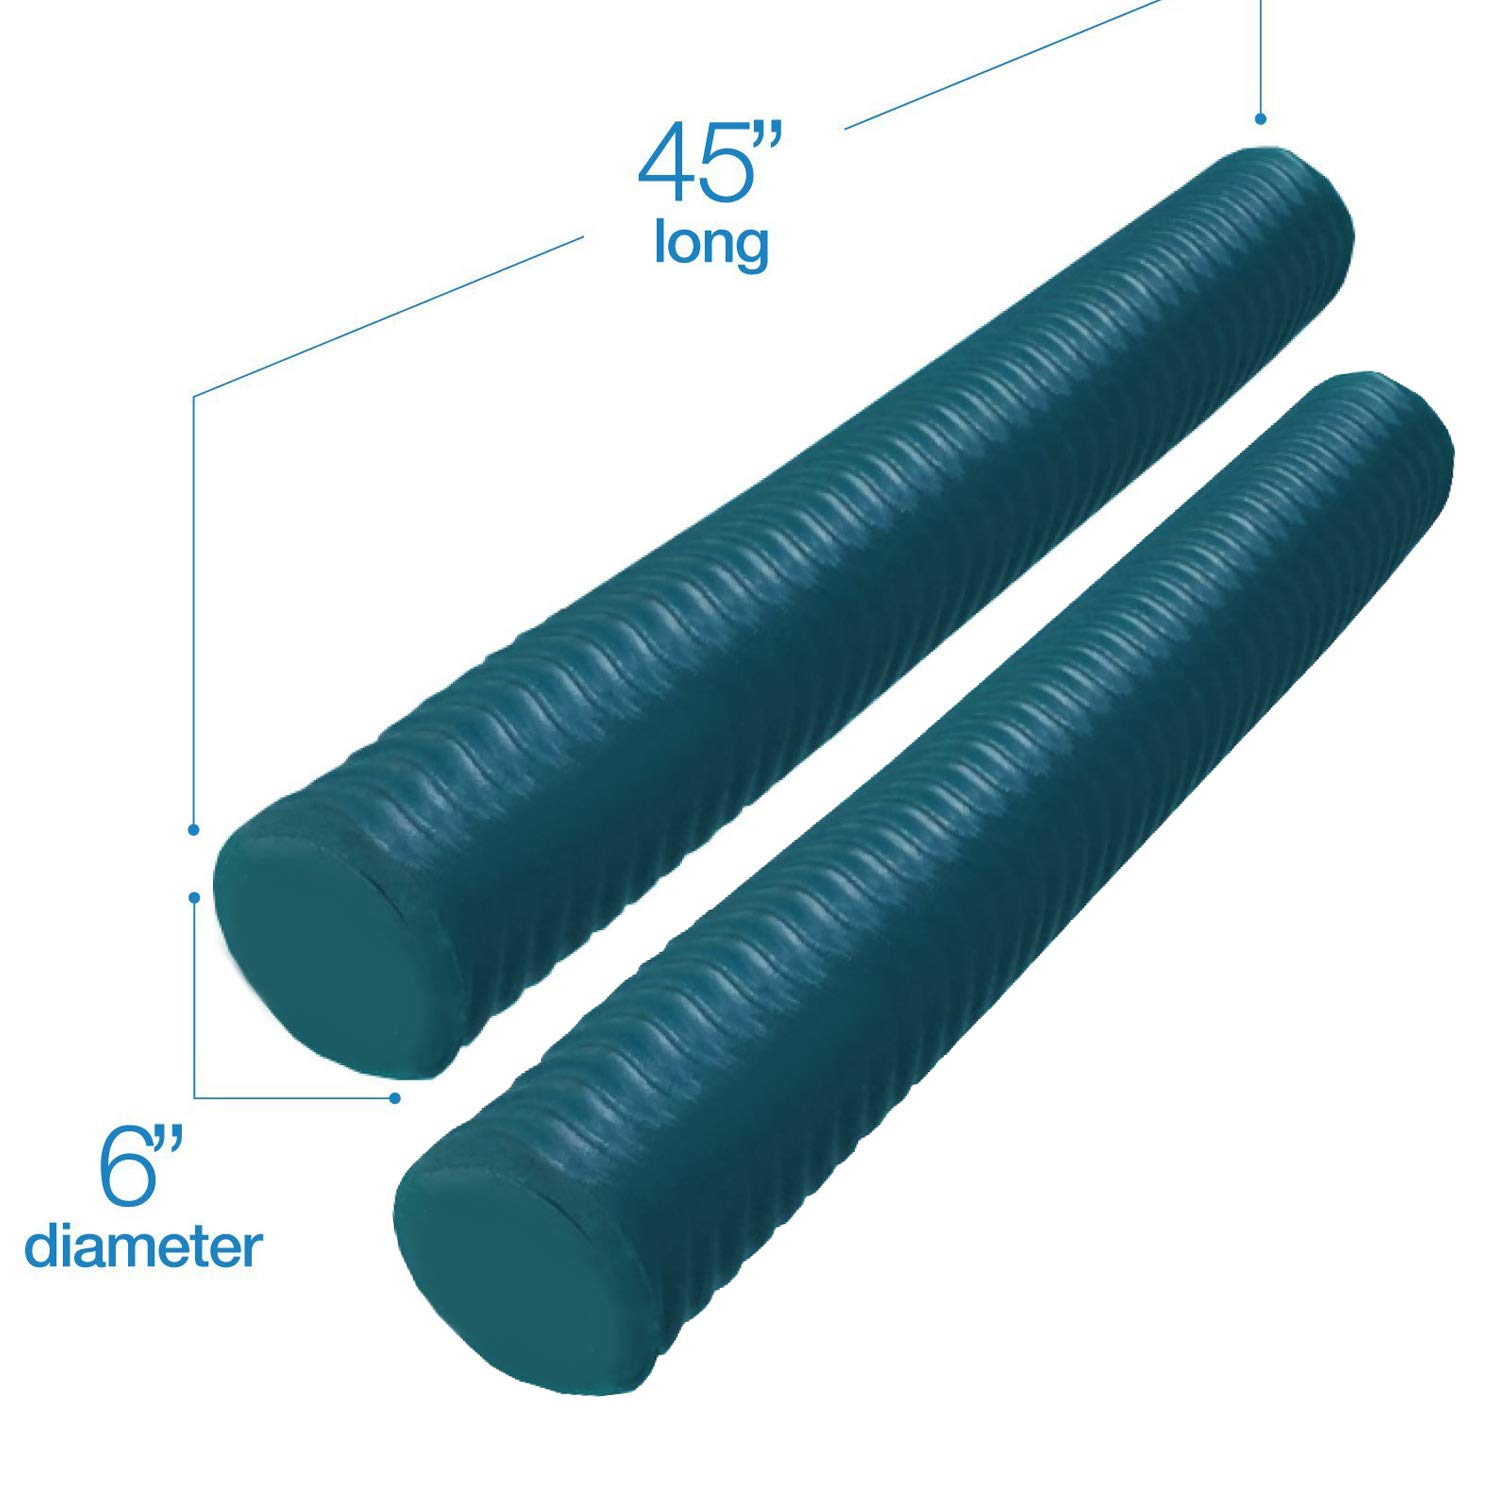 Lazy Floats Foam Pool Noodle Big Round Premium Outdoor Water Float (Teal, 2-Pack)